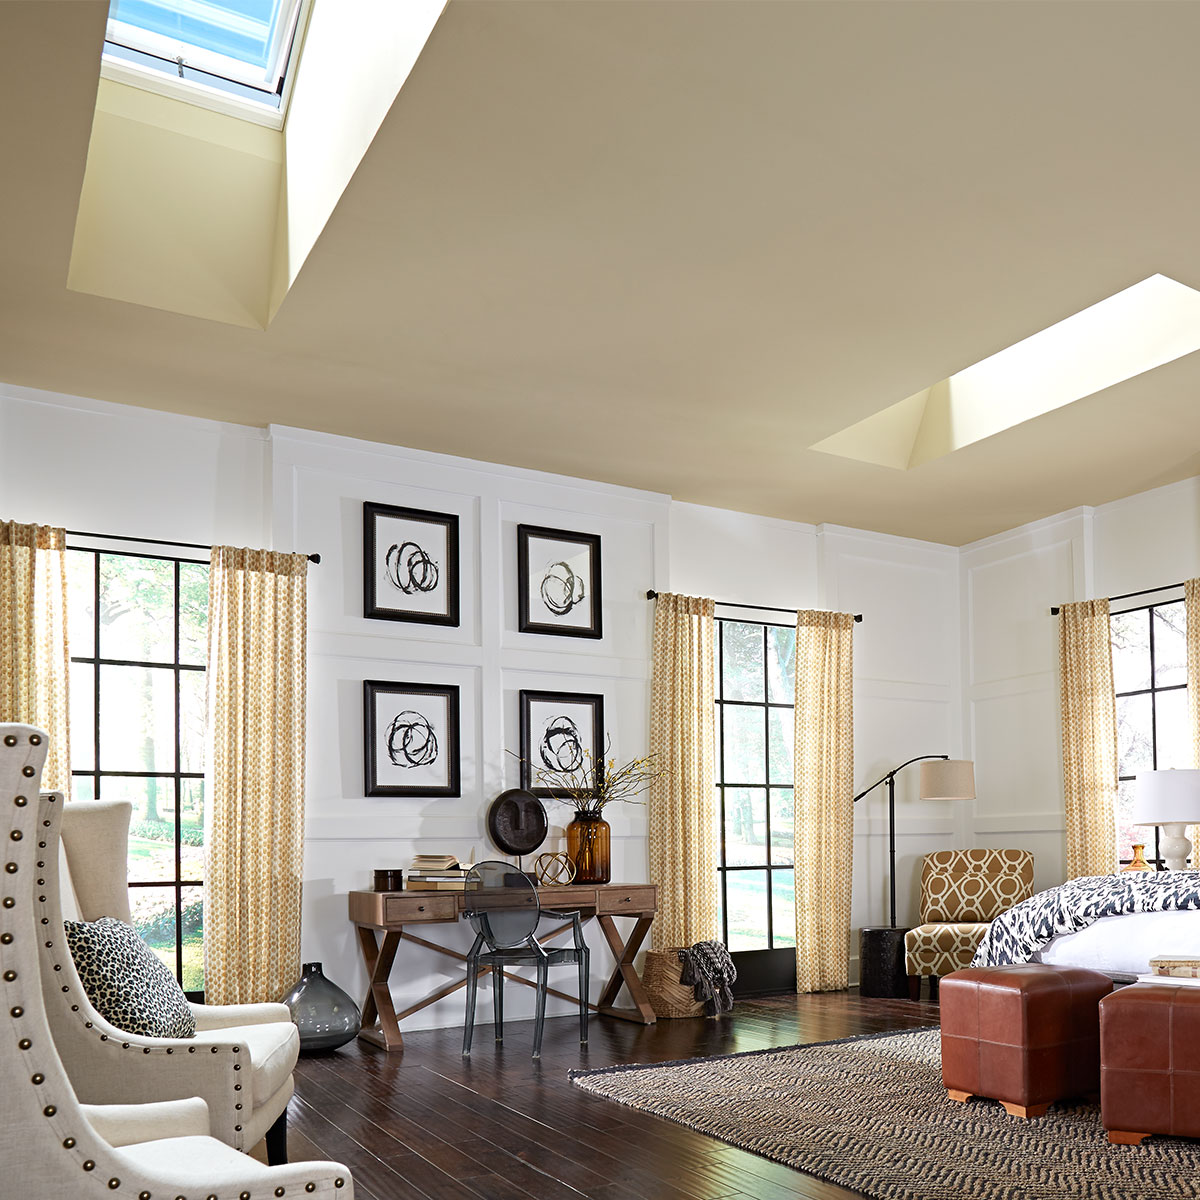 """The @VELUX Manual and Electric """"Fresh Air"""" skylight enables any home or office to embrace the best of what nature has to offer! Opening for maximum fresh air, this venting skylight contributes to a home's comfort level by allowing stale, humid air to be released.  #RVWCO #VELUX https://t.co/v2rCduJdBV"""